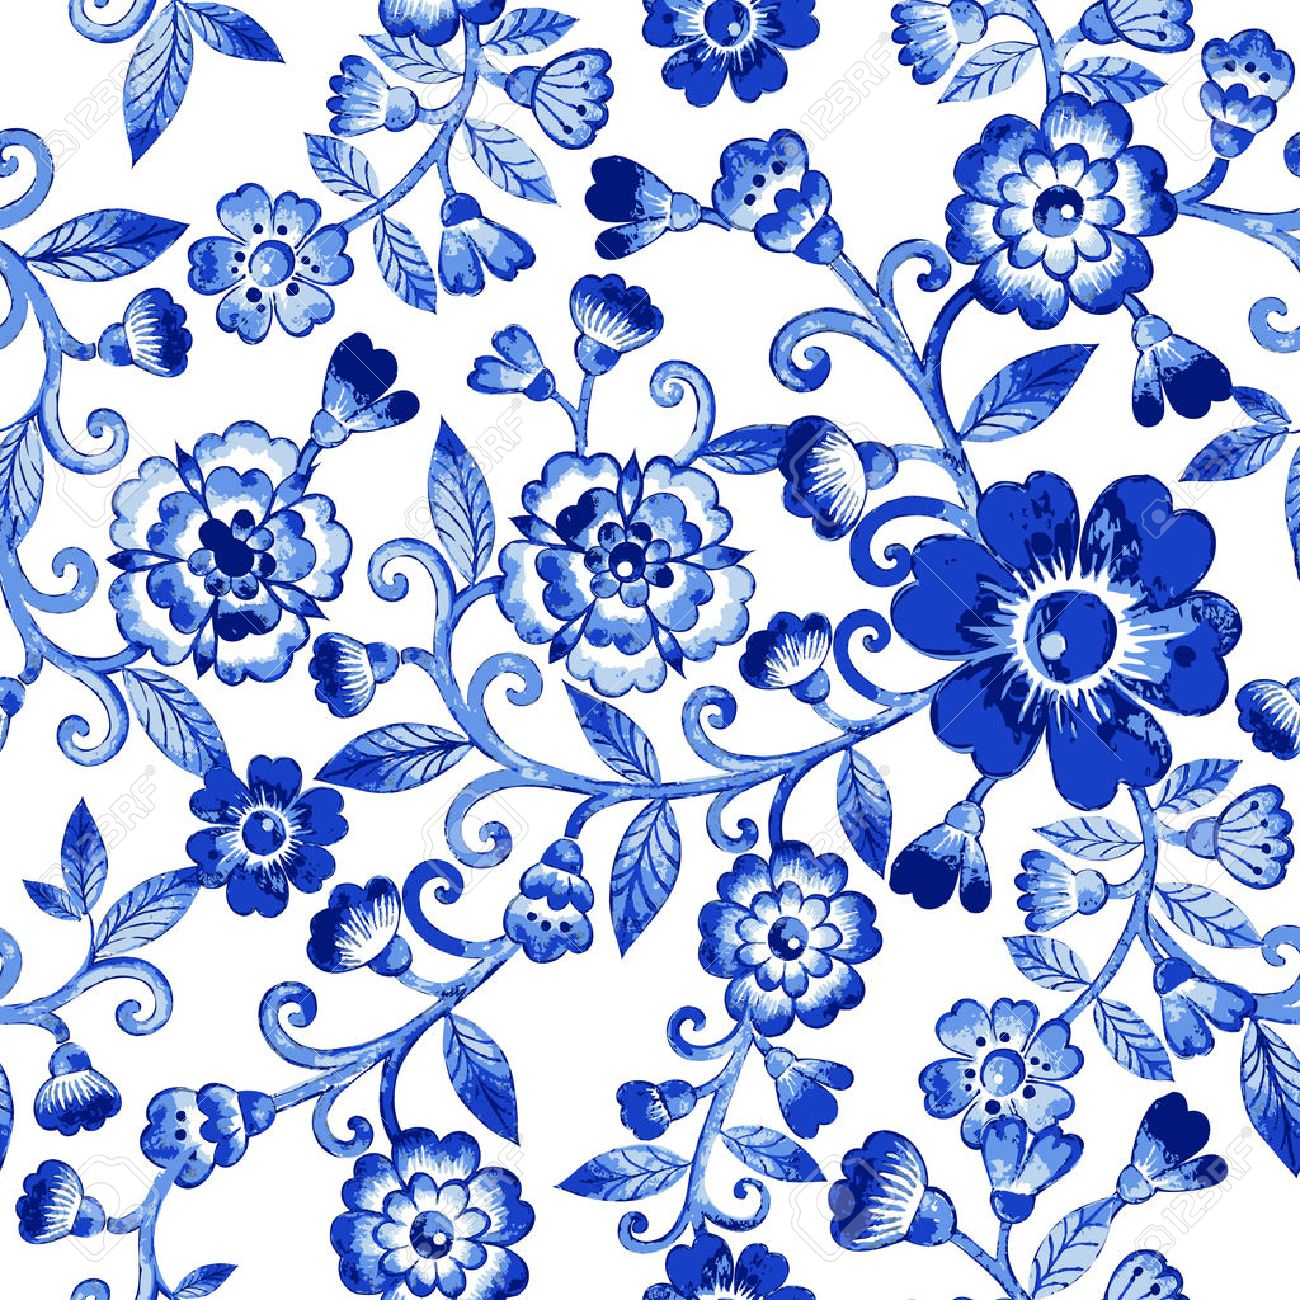 Vector floral watercolor texture pattern with blue flowers.Watercolor floral pattern.Blue flowers pattern.Seamless pattern can be used for wallpaper,pattern fills,web page background,surface textures - 50560696